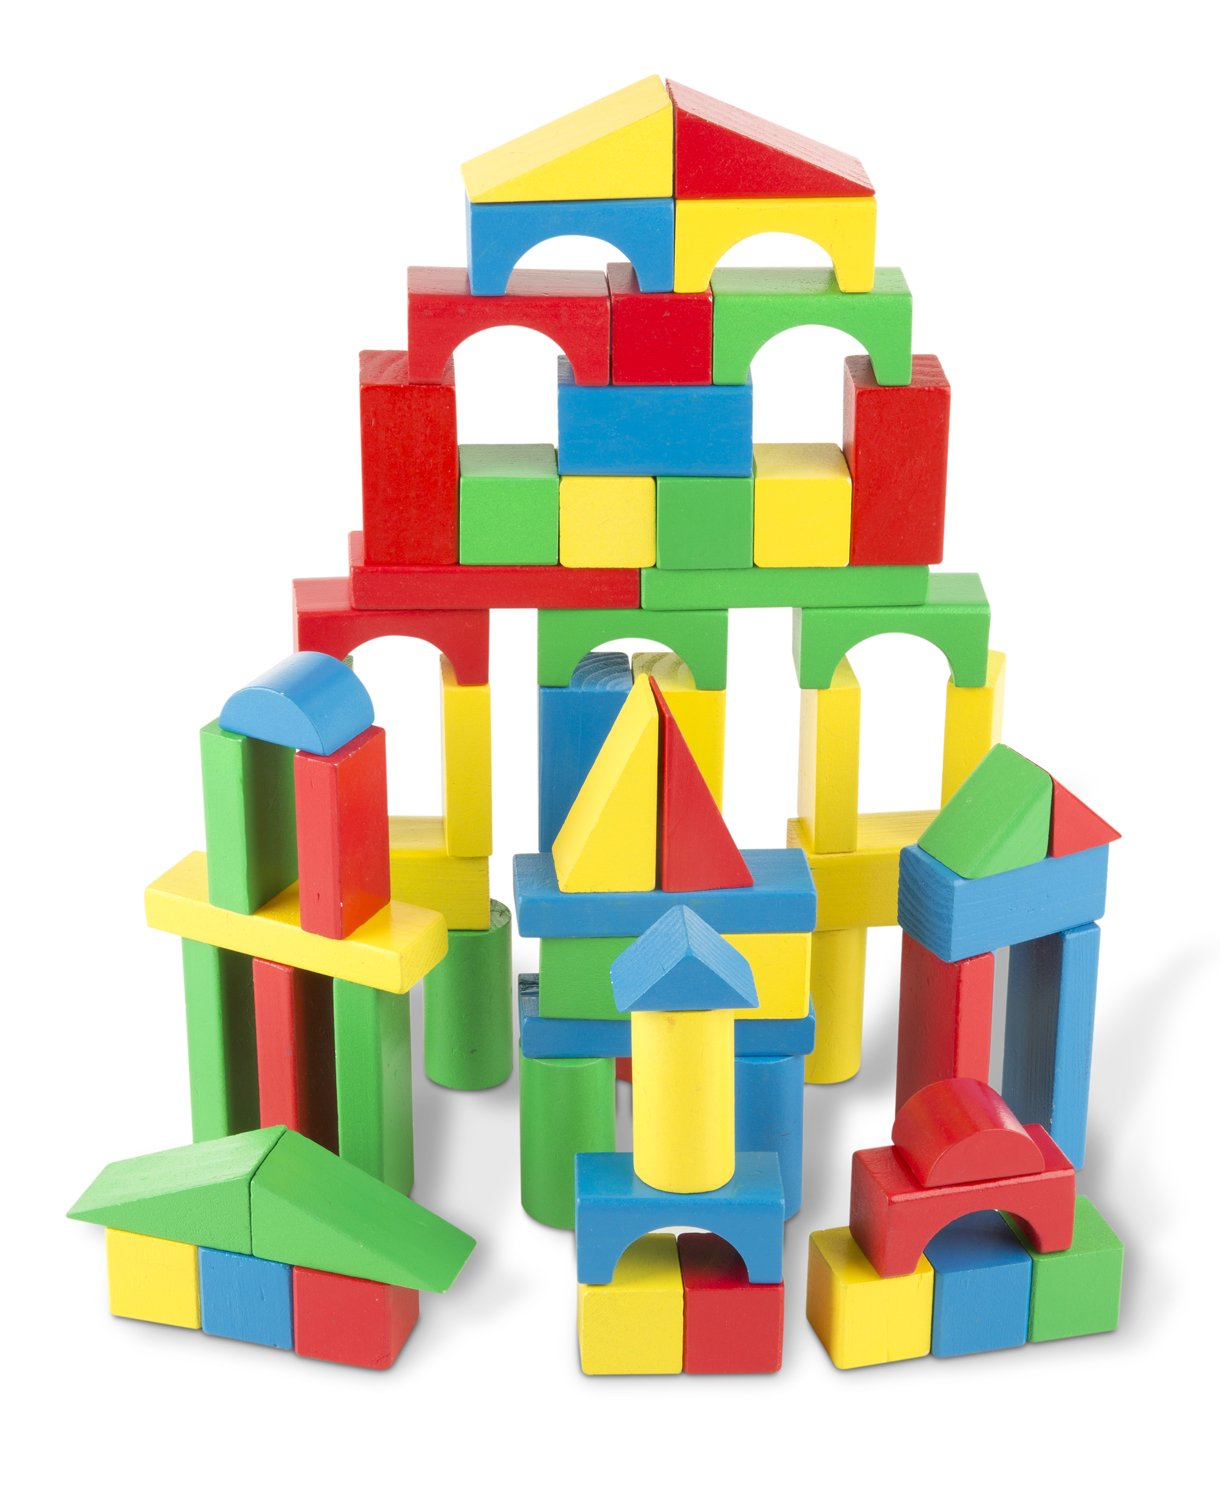 Amazon.com: Melissa & Doug Wooden Building Blocks Set - 100 Blocks in 4  Colors and 9 Shapes: Melissa & Doug: Toys & Games